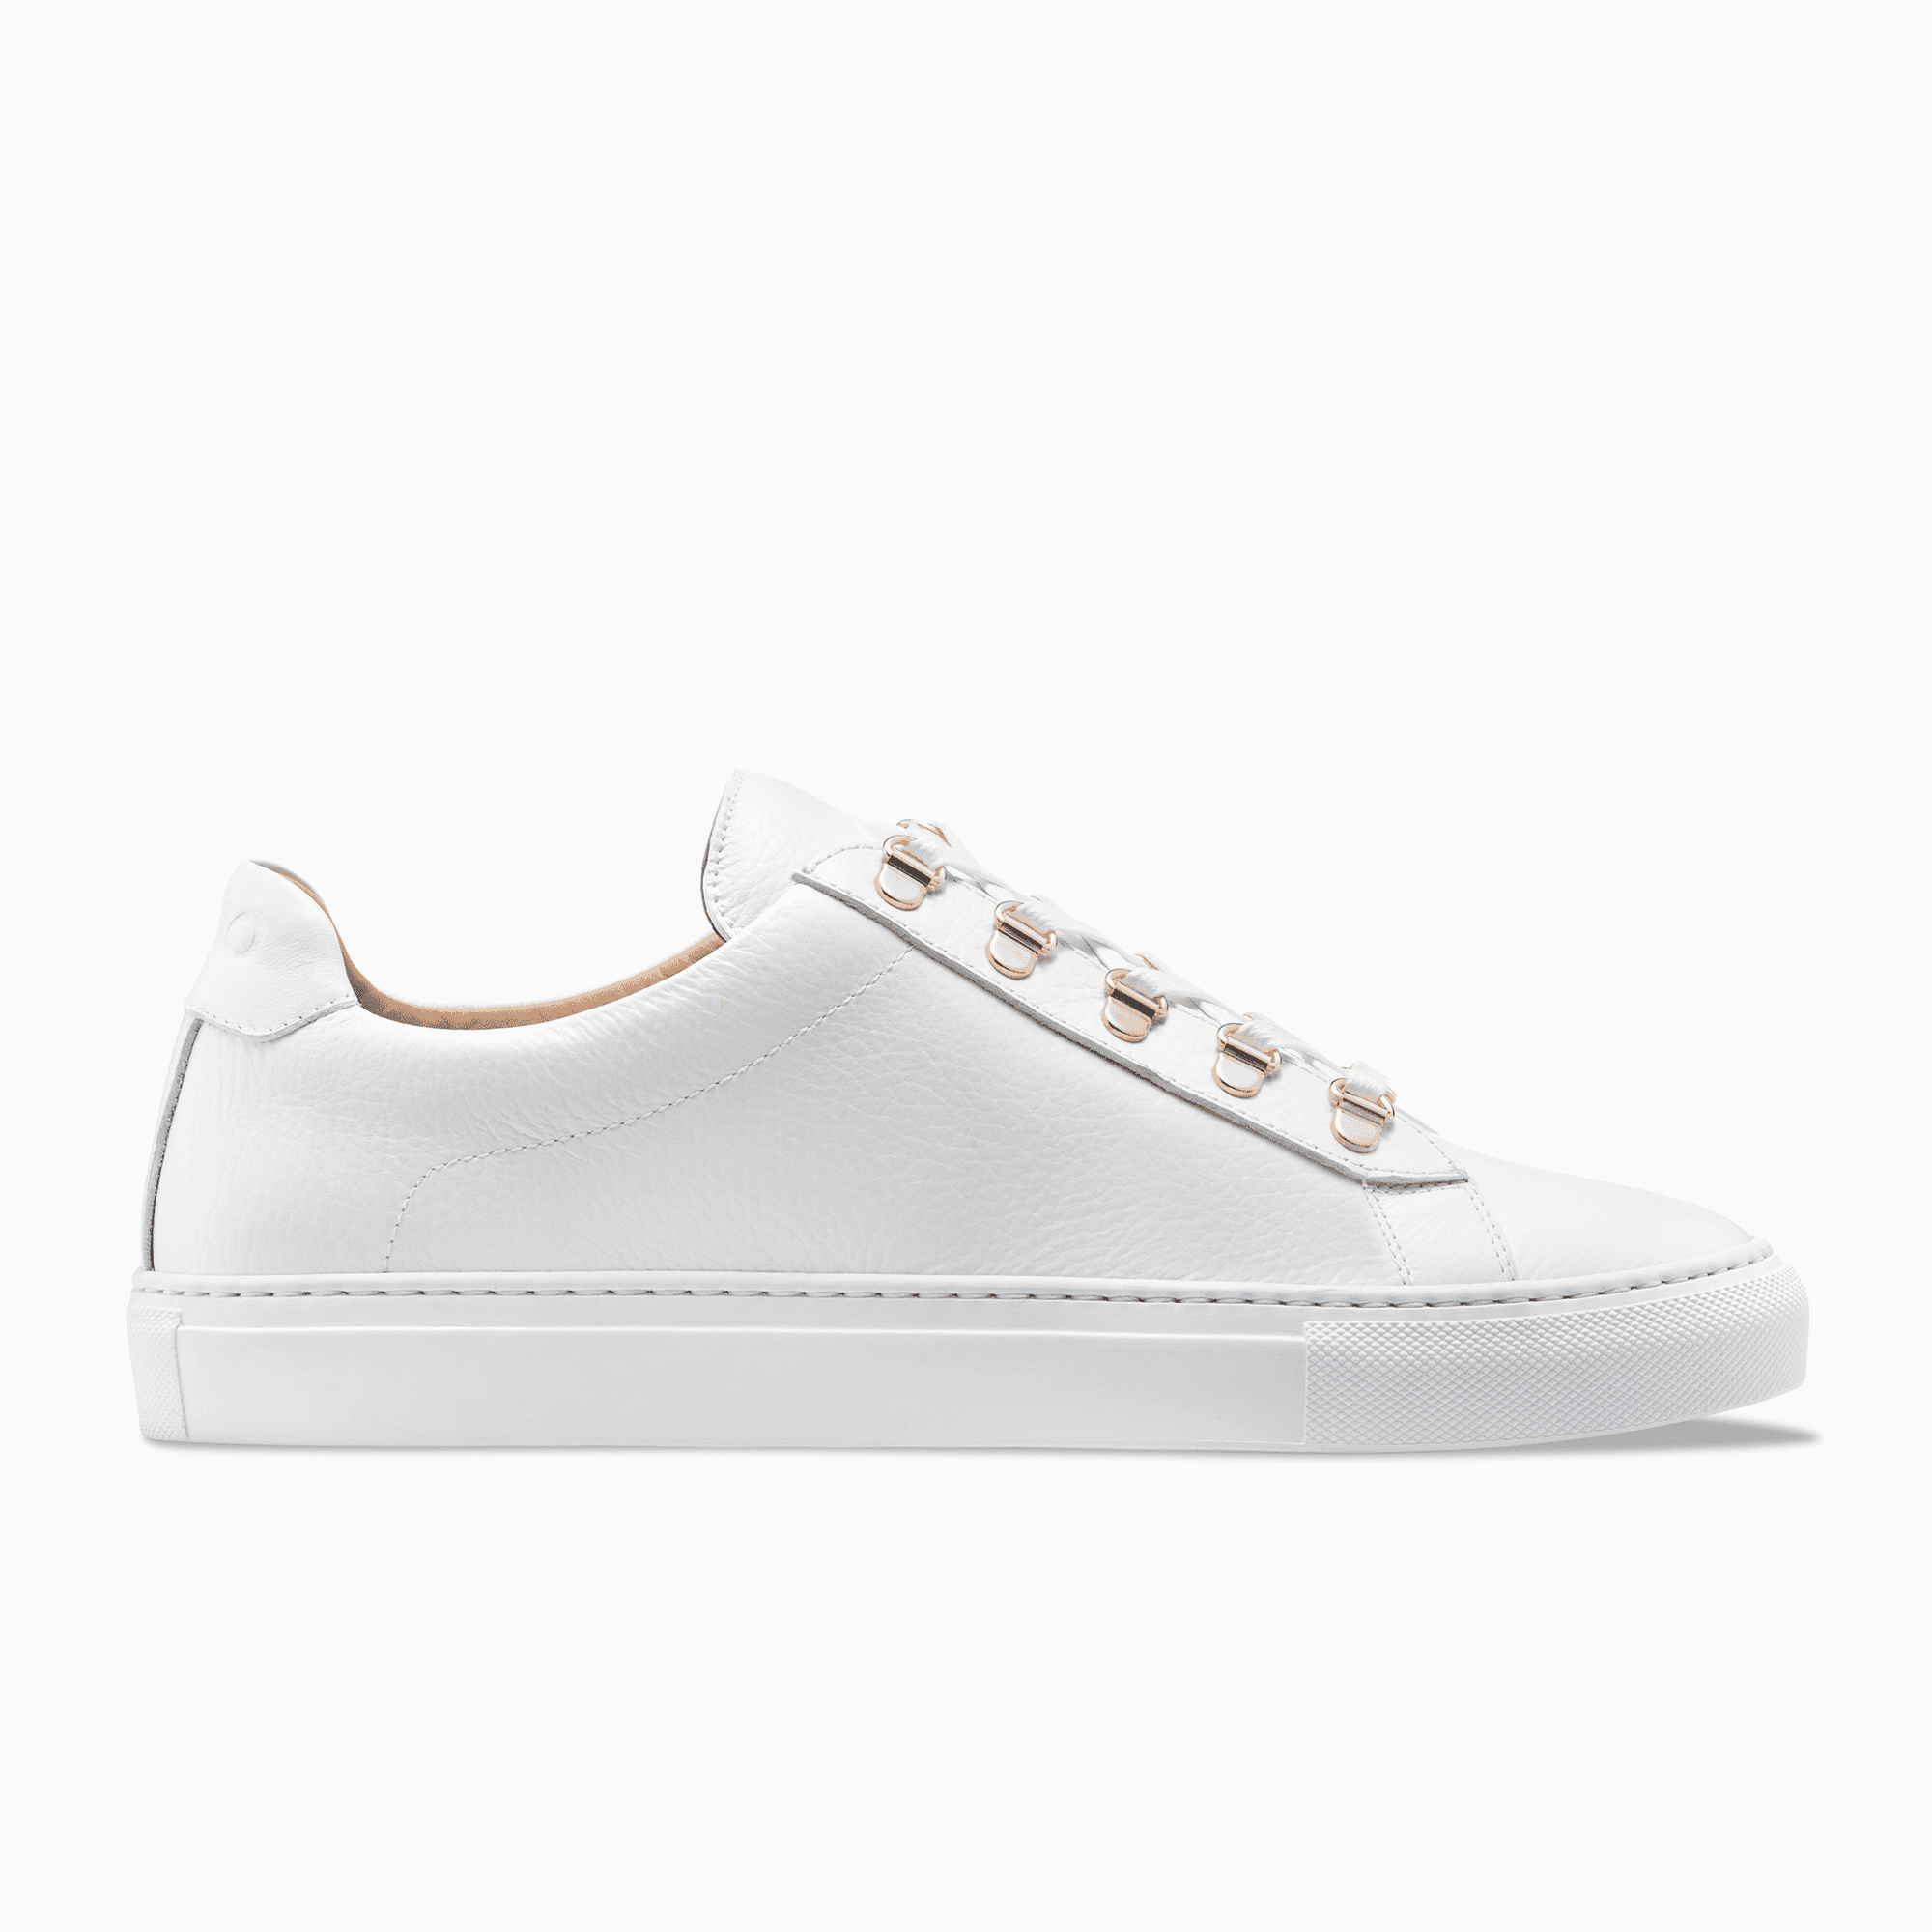 Men S Low Top Leather Sneaker In White Gavia Bianco Koio